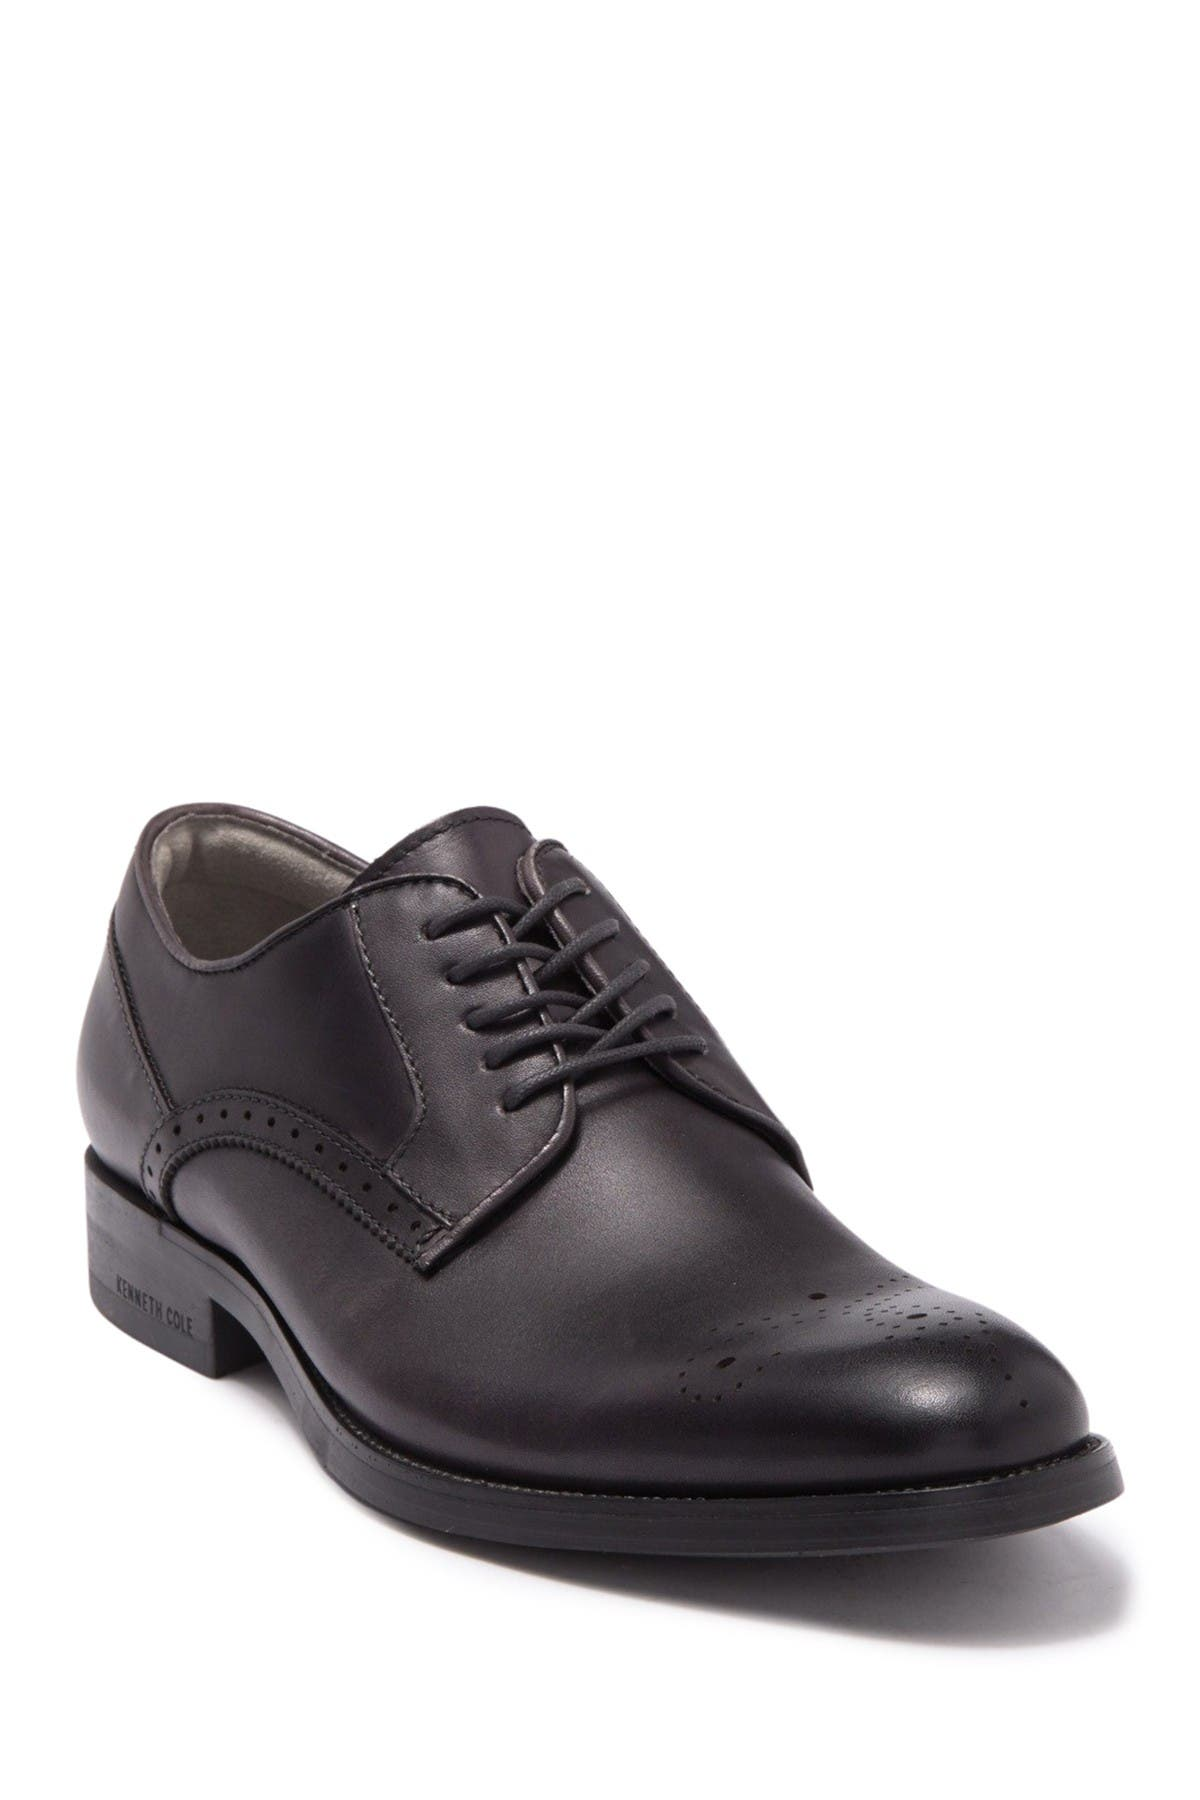 Image of Kenneth Cole New York Brock Lace-Up Derby